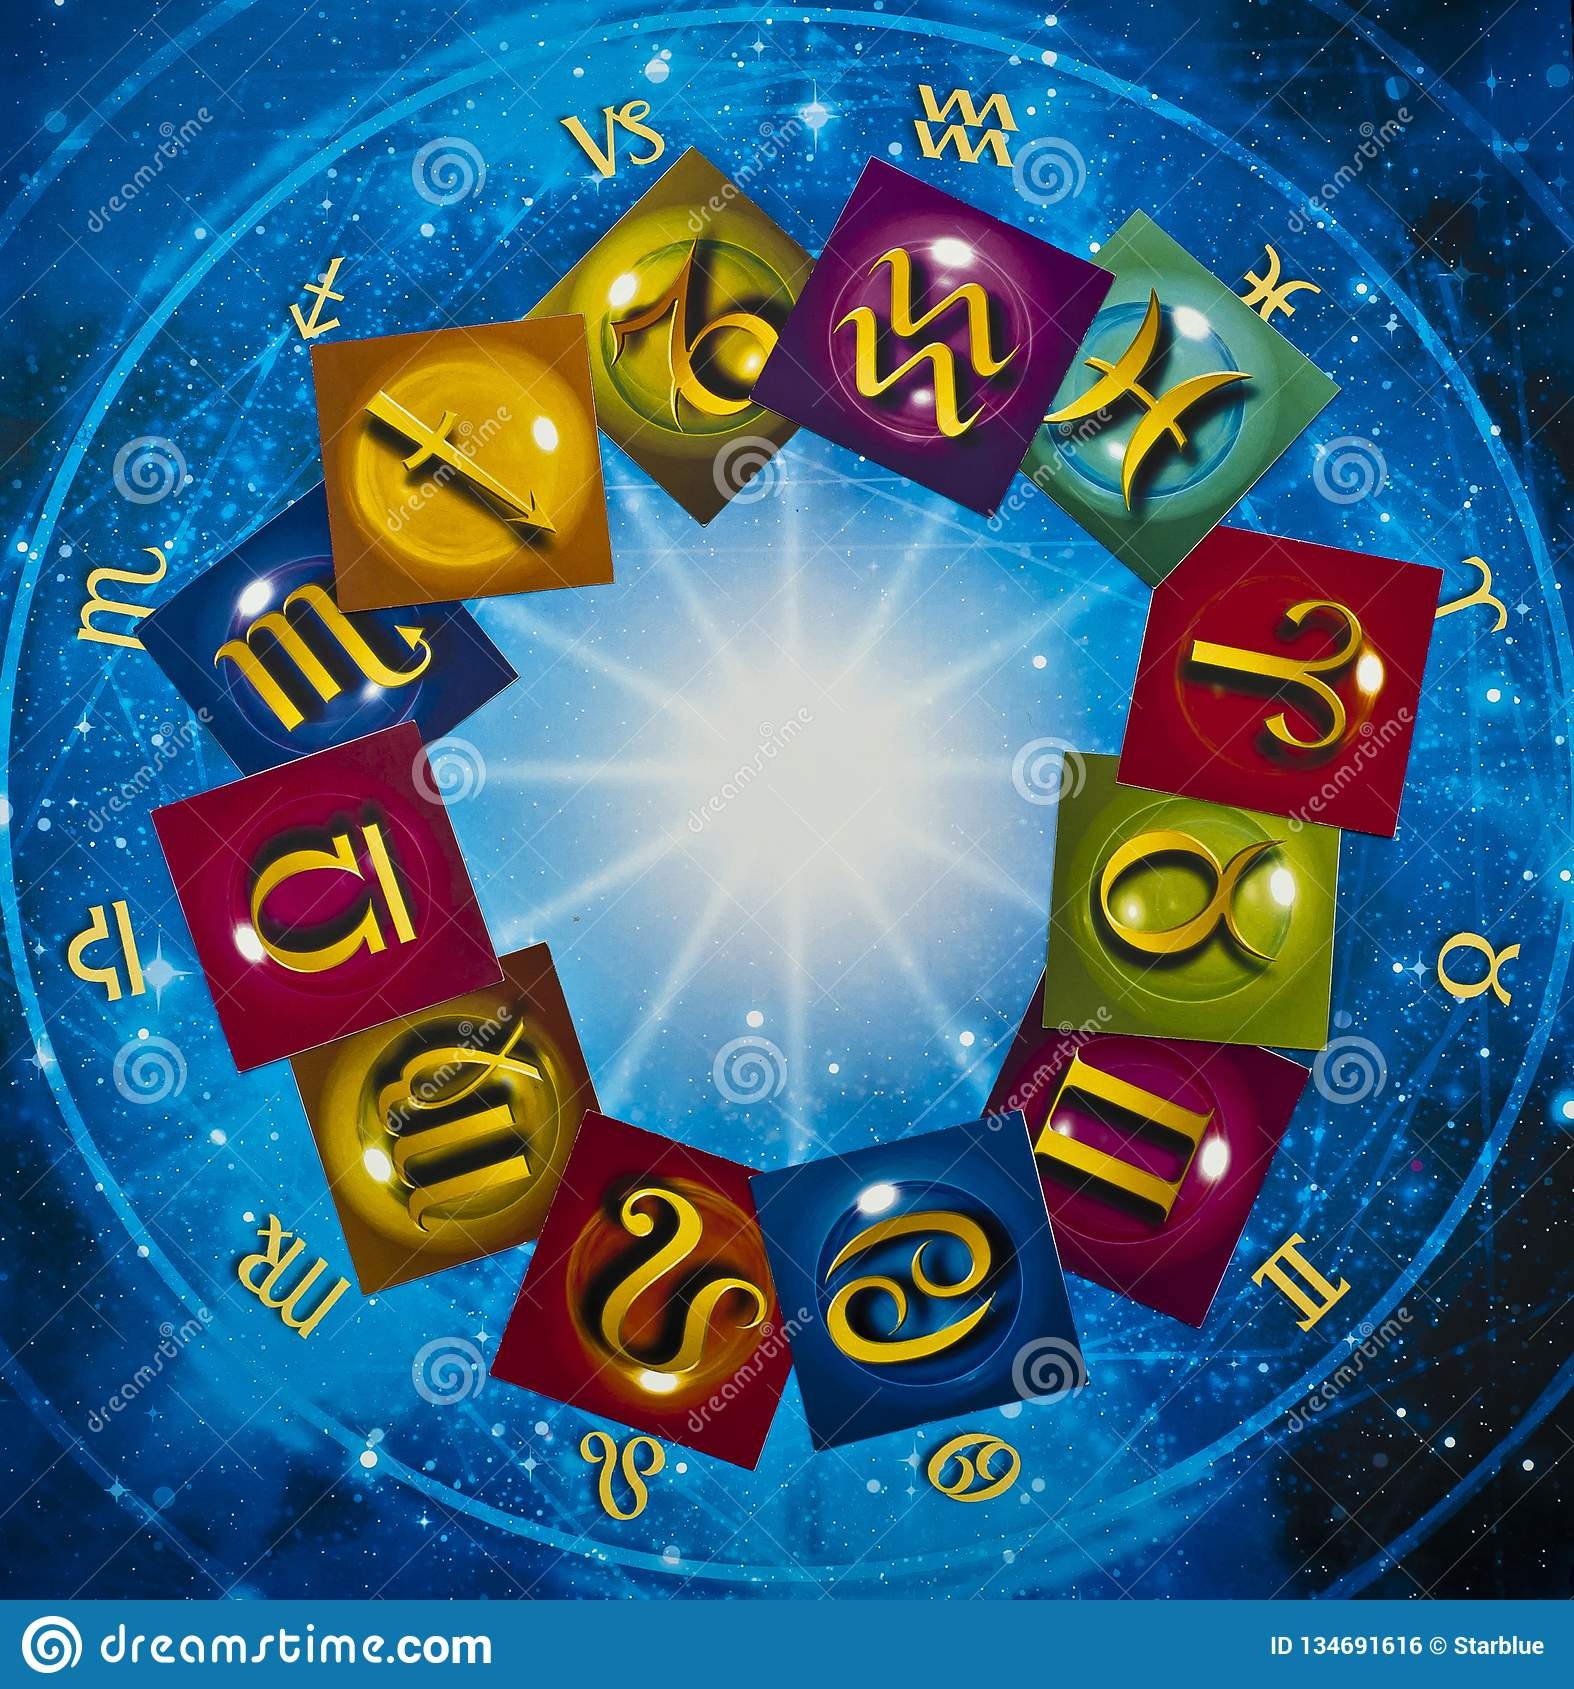 Colorful zodiac signs over blue horoscope like astrology concept